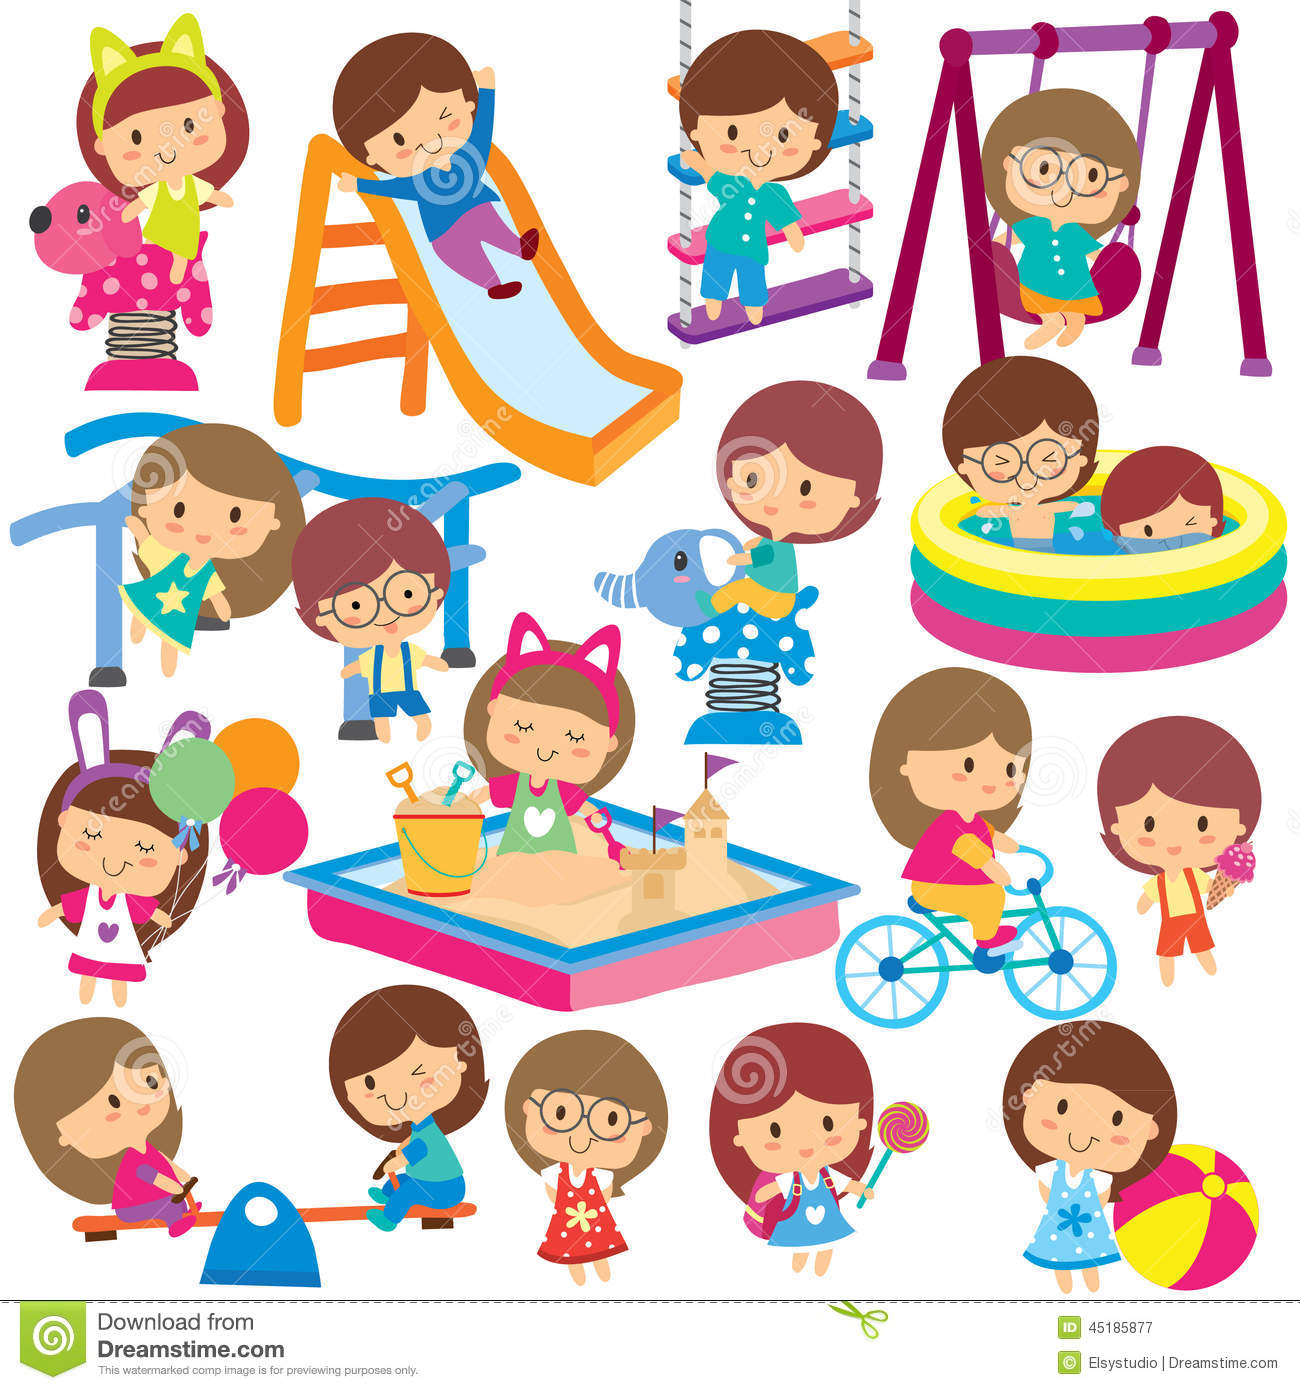 Summer activities for kids clipart 8 » Clipart Station.